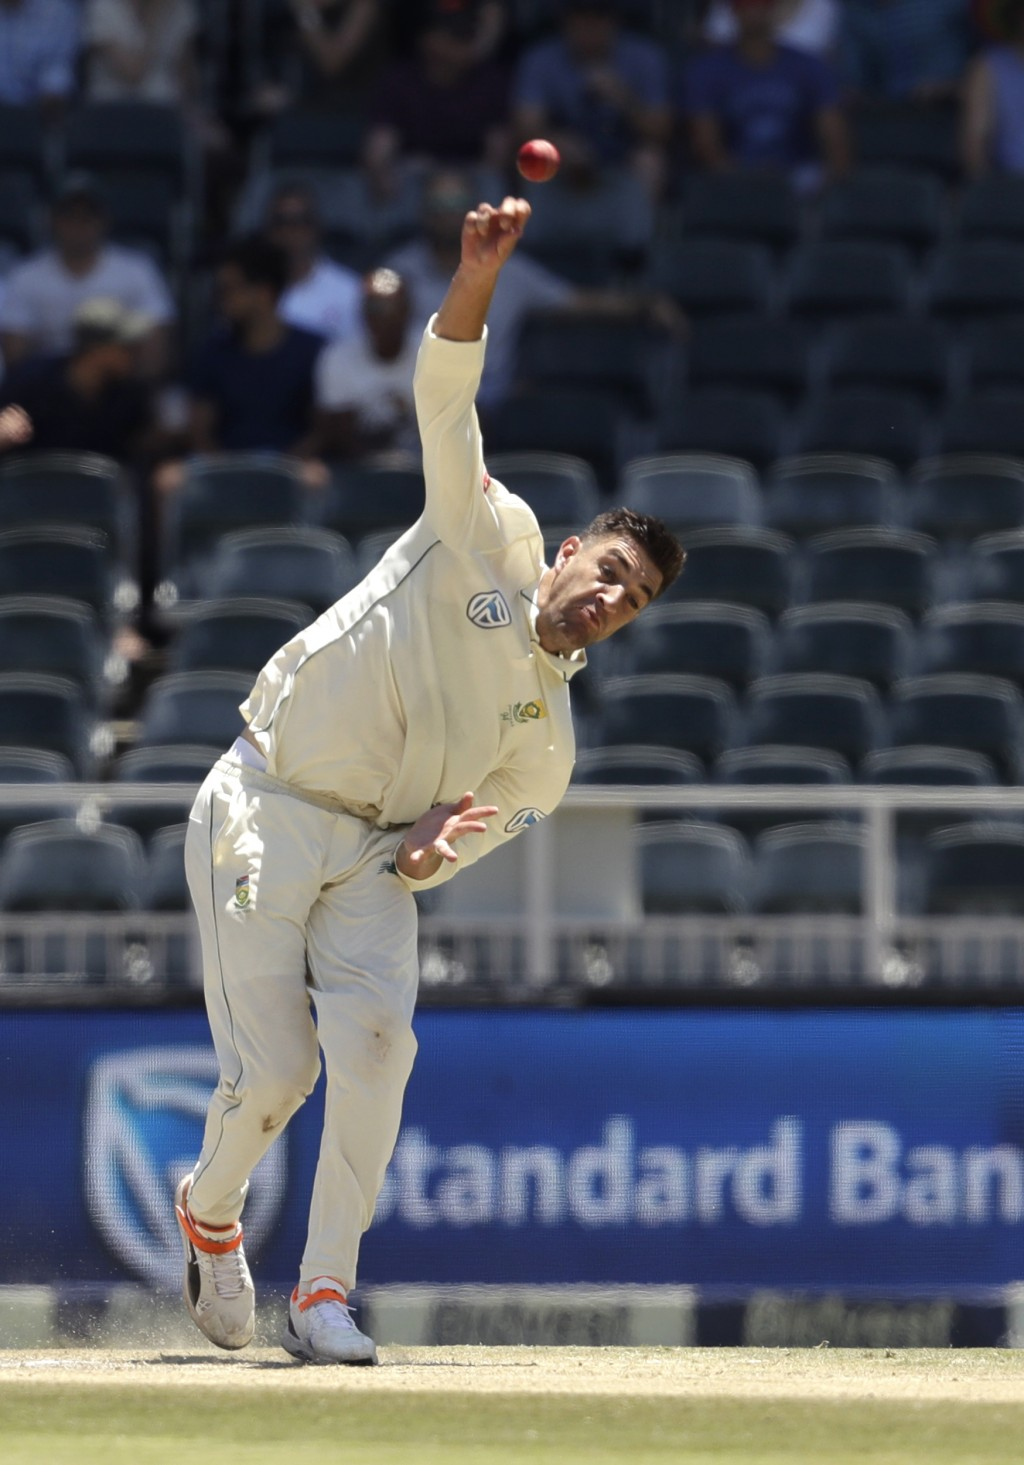 South Africa's bowler Duanne Olivier bowls on day two of the third cricket test match between South Africa and Pakistan at the Wanderers stadium in Jo